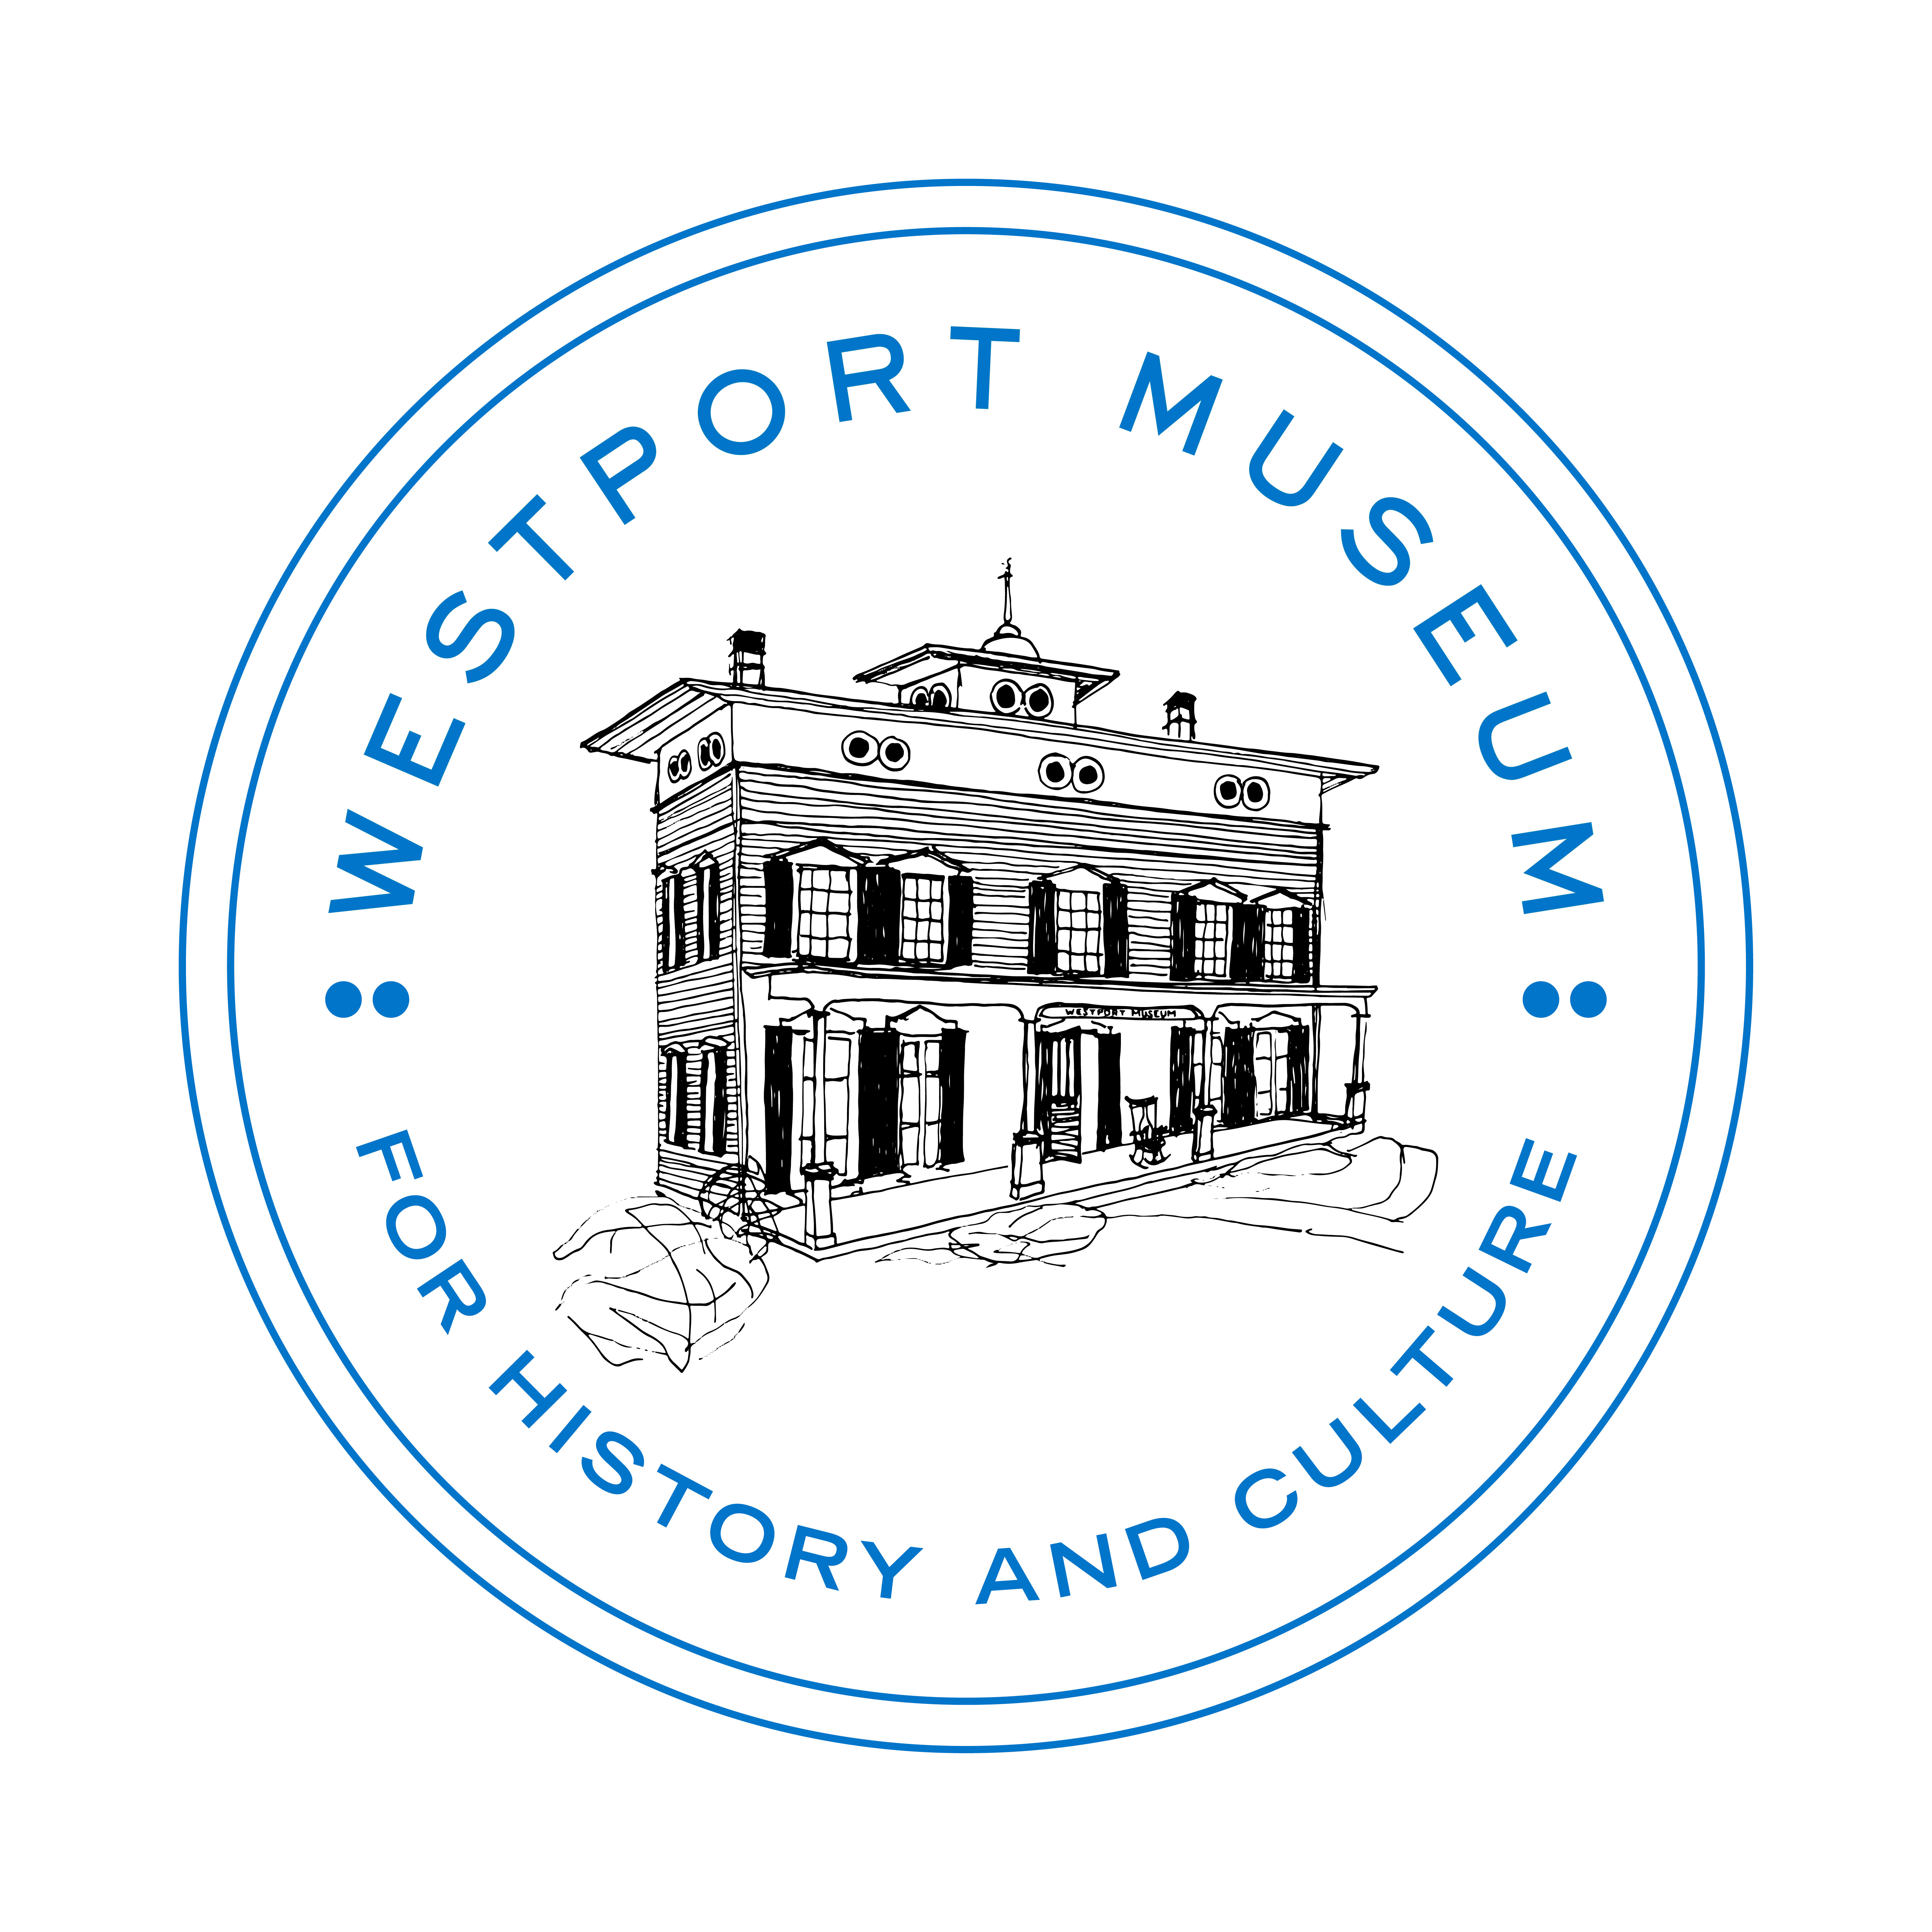 Westport Museum for History and Culture